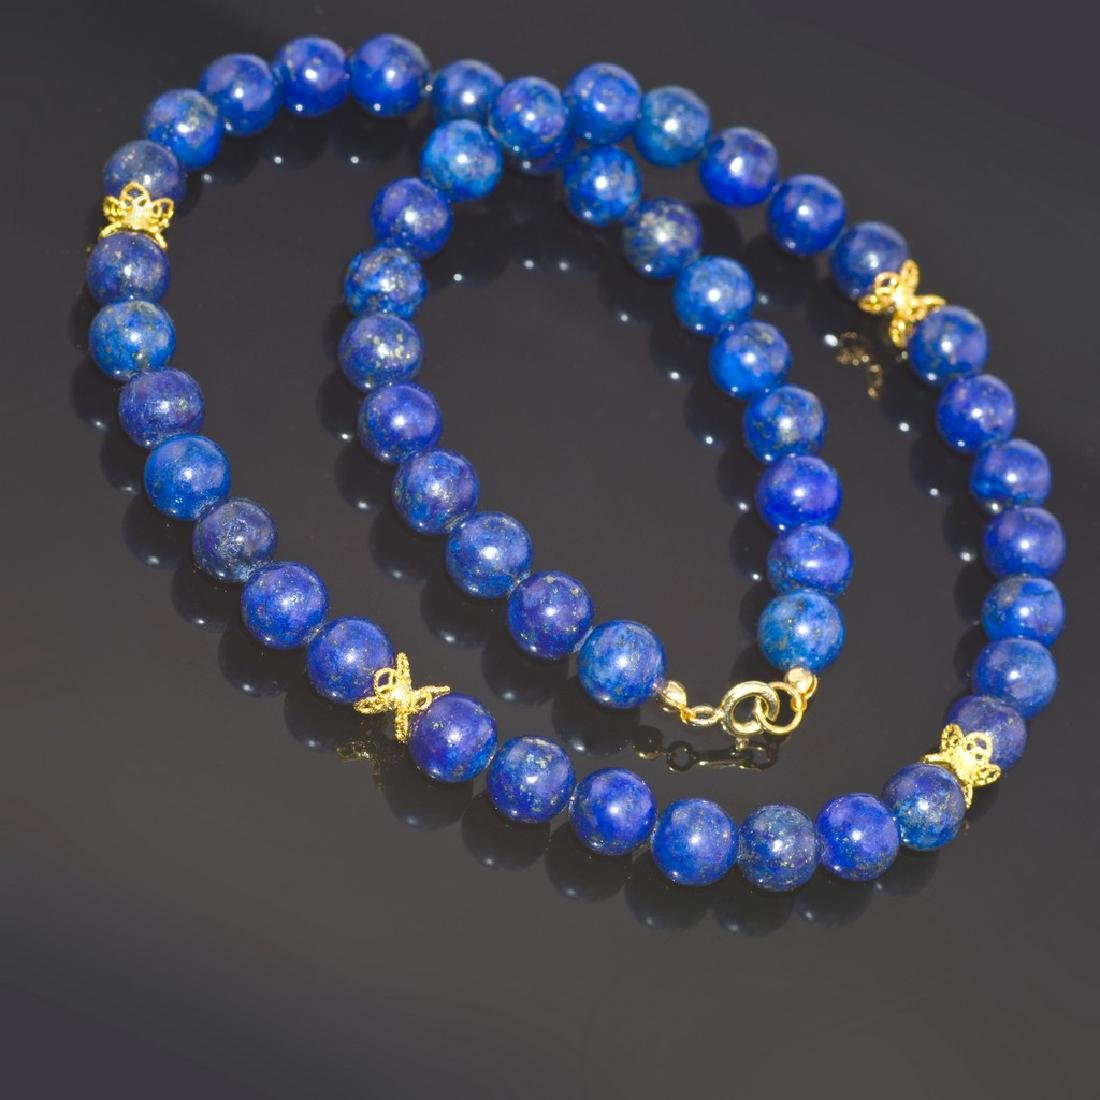 Lapis lazuli Necklace with Golden Accents - 4